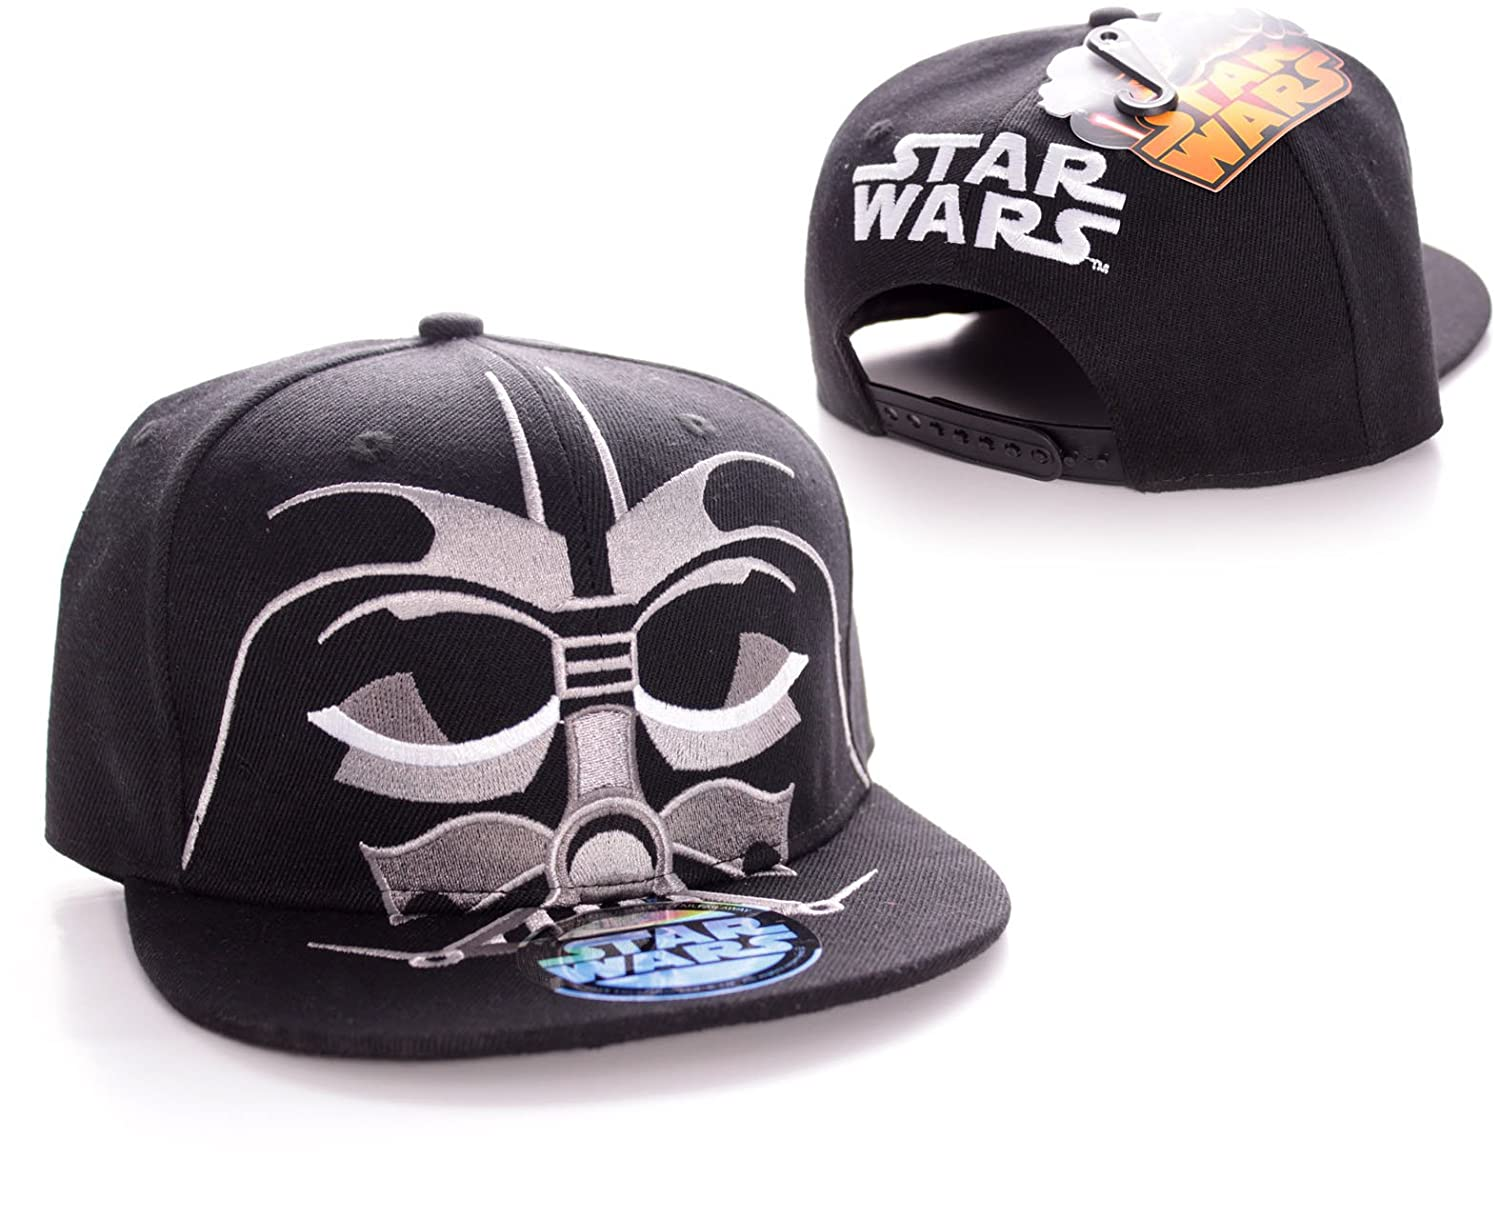 Star Wars Gorra Béisbol Darth Vader Mask: Amazon.es: Ropa y accesorios